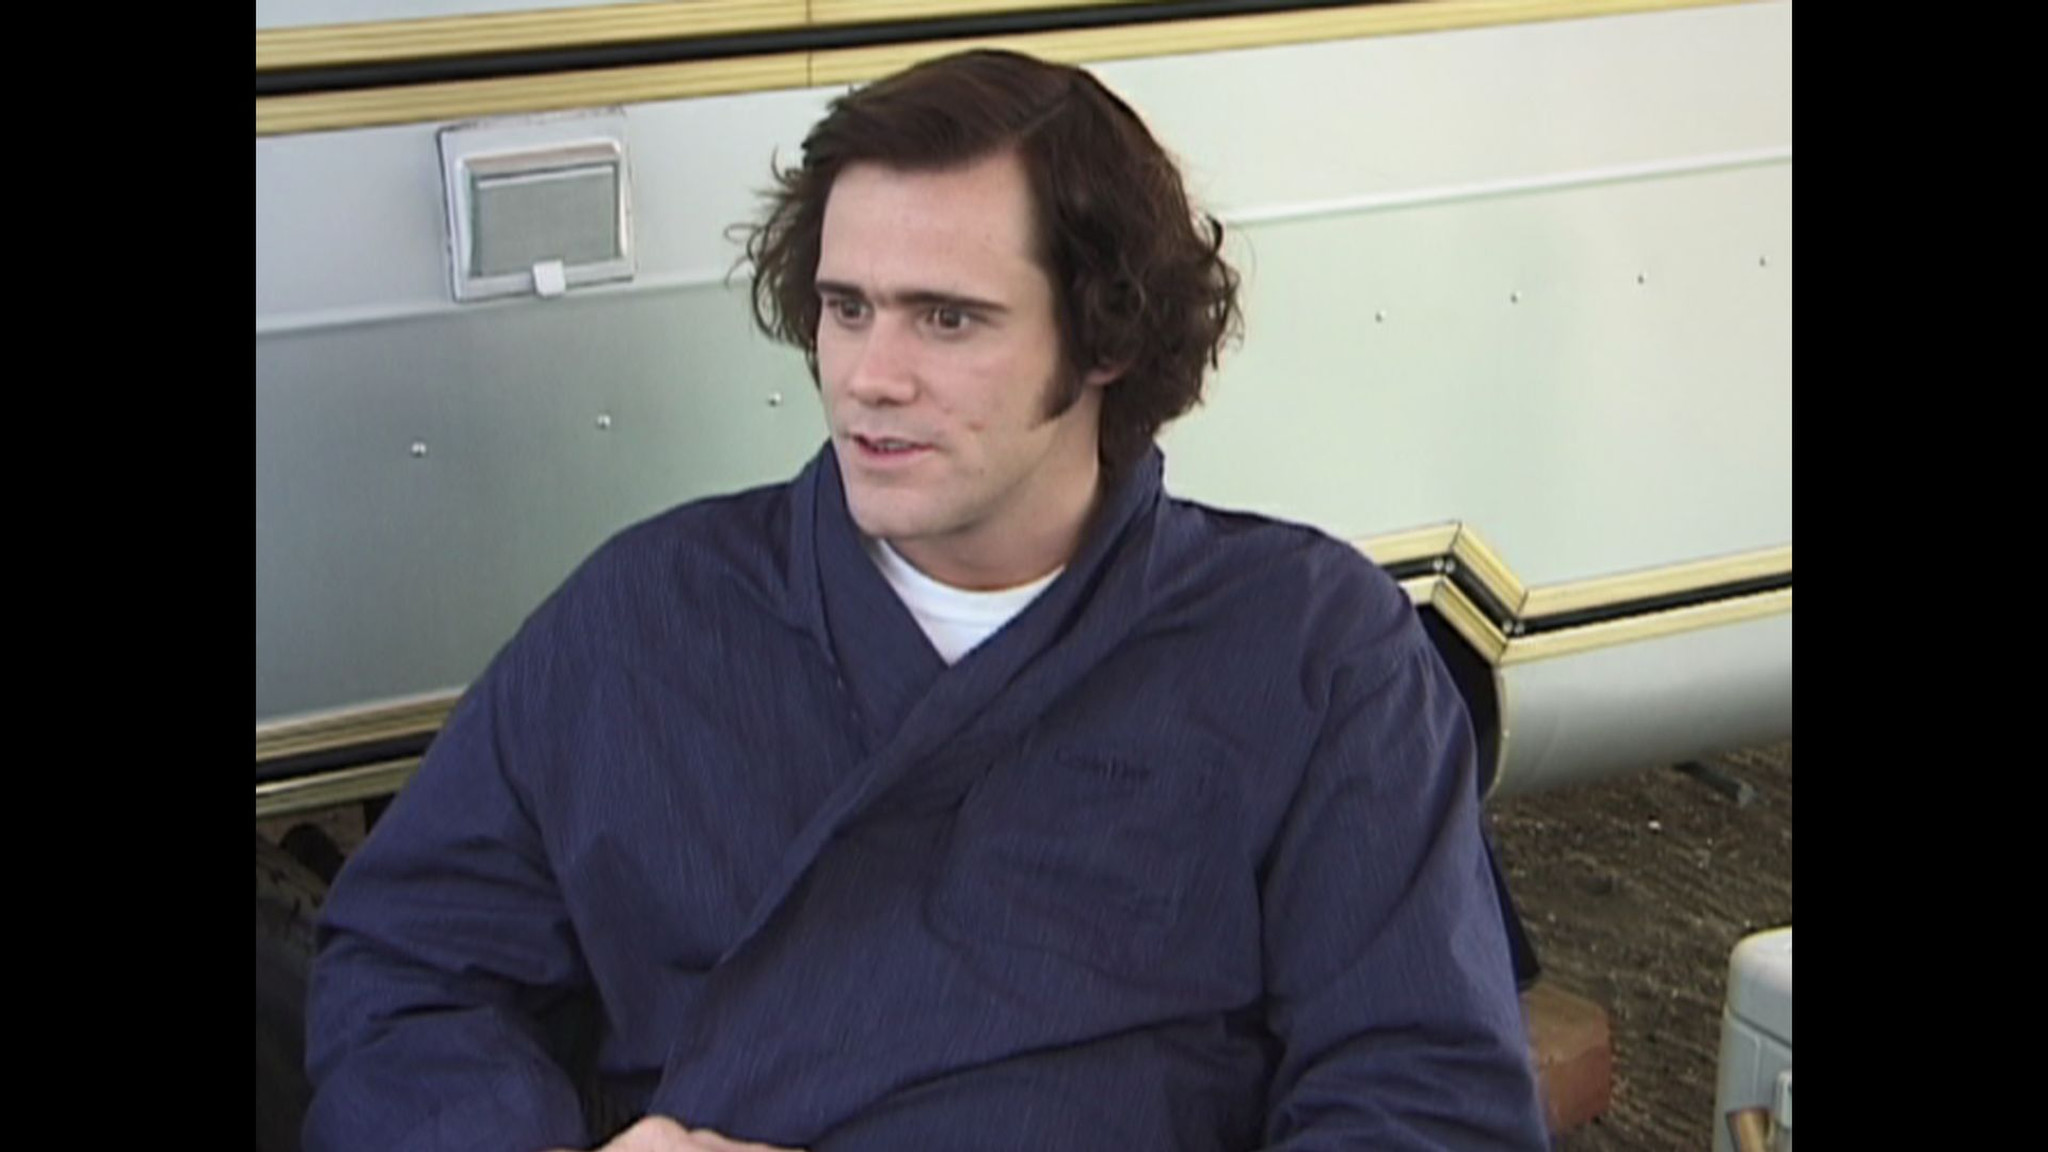 Jim Carey in a scene from the documentary movie